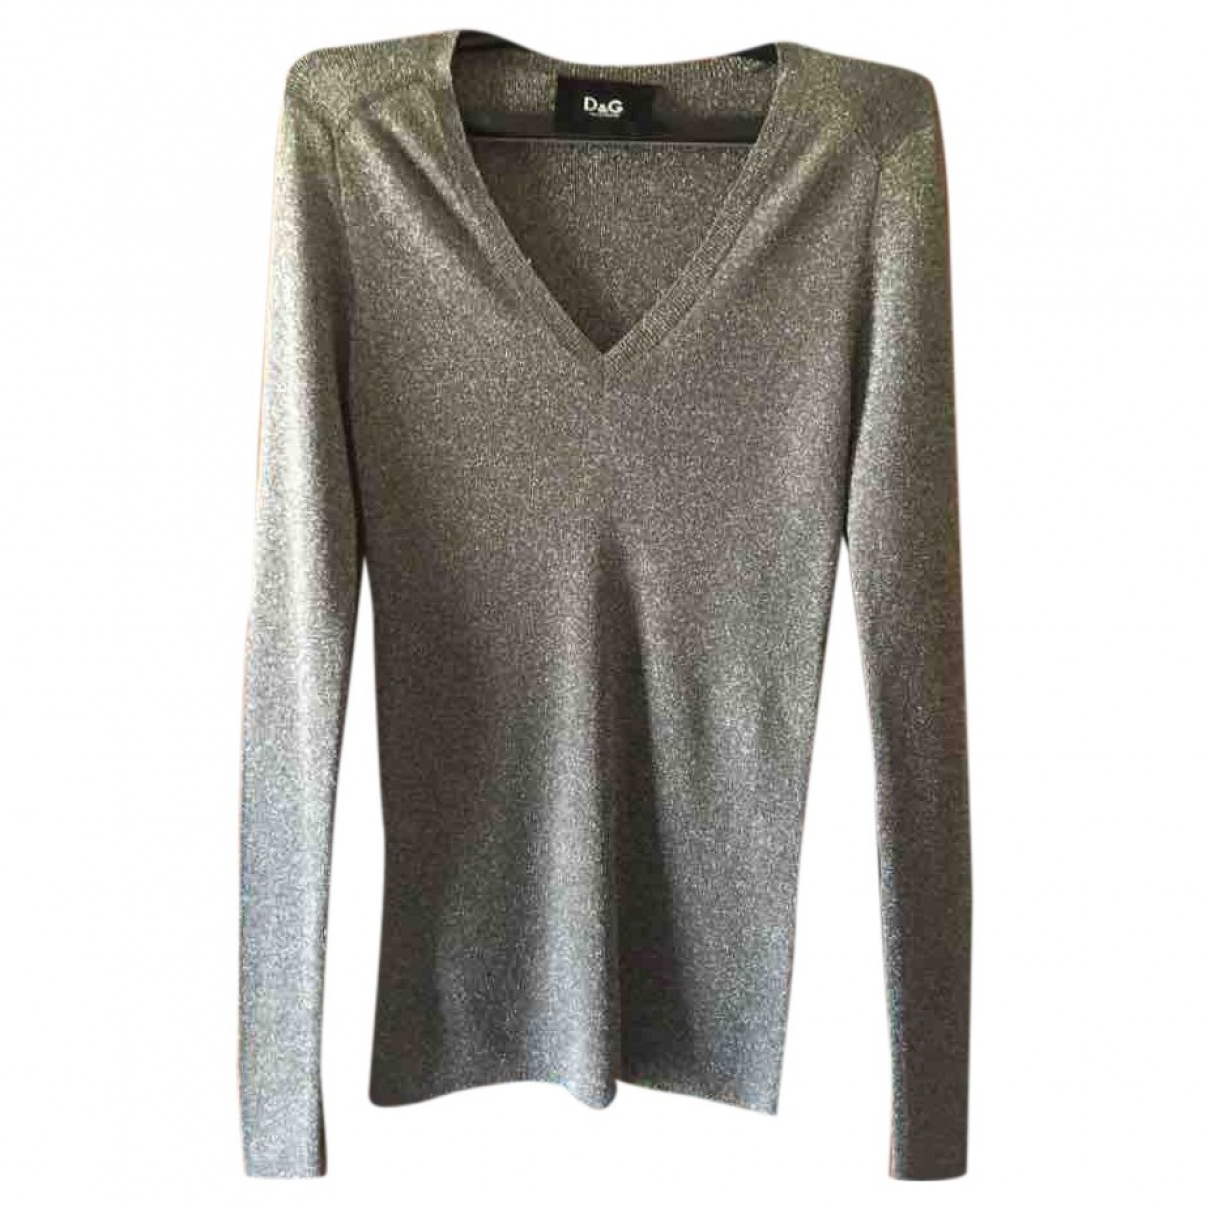 D&g \N Pullover in  Metallic Synthetik